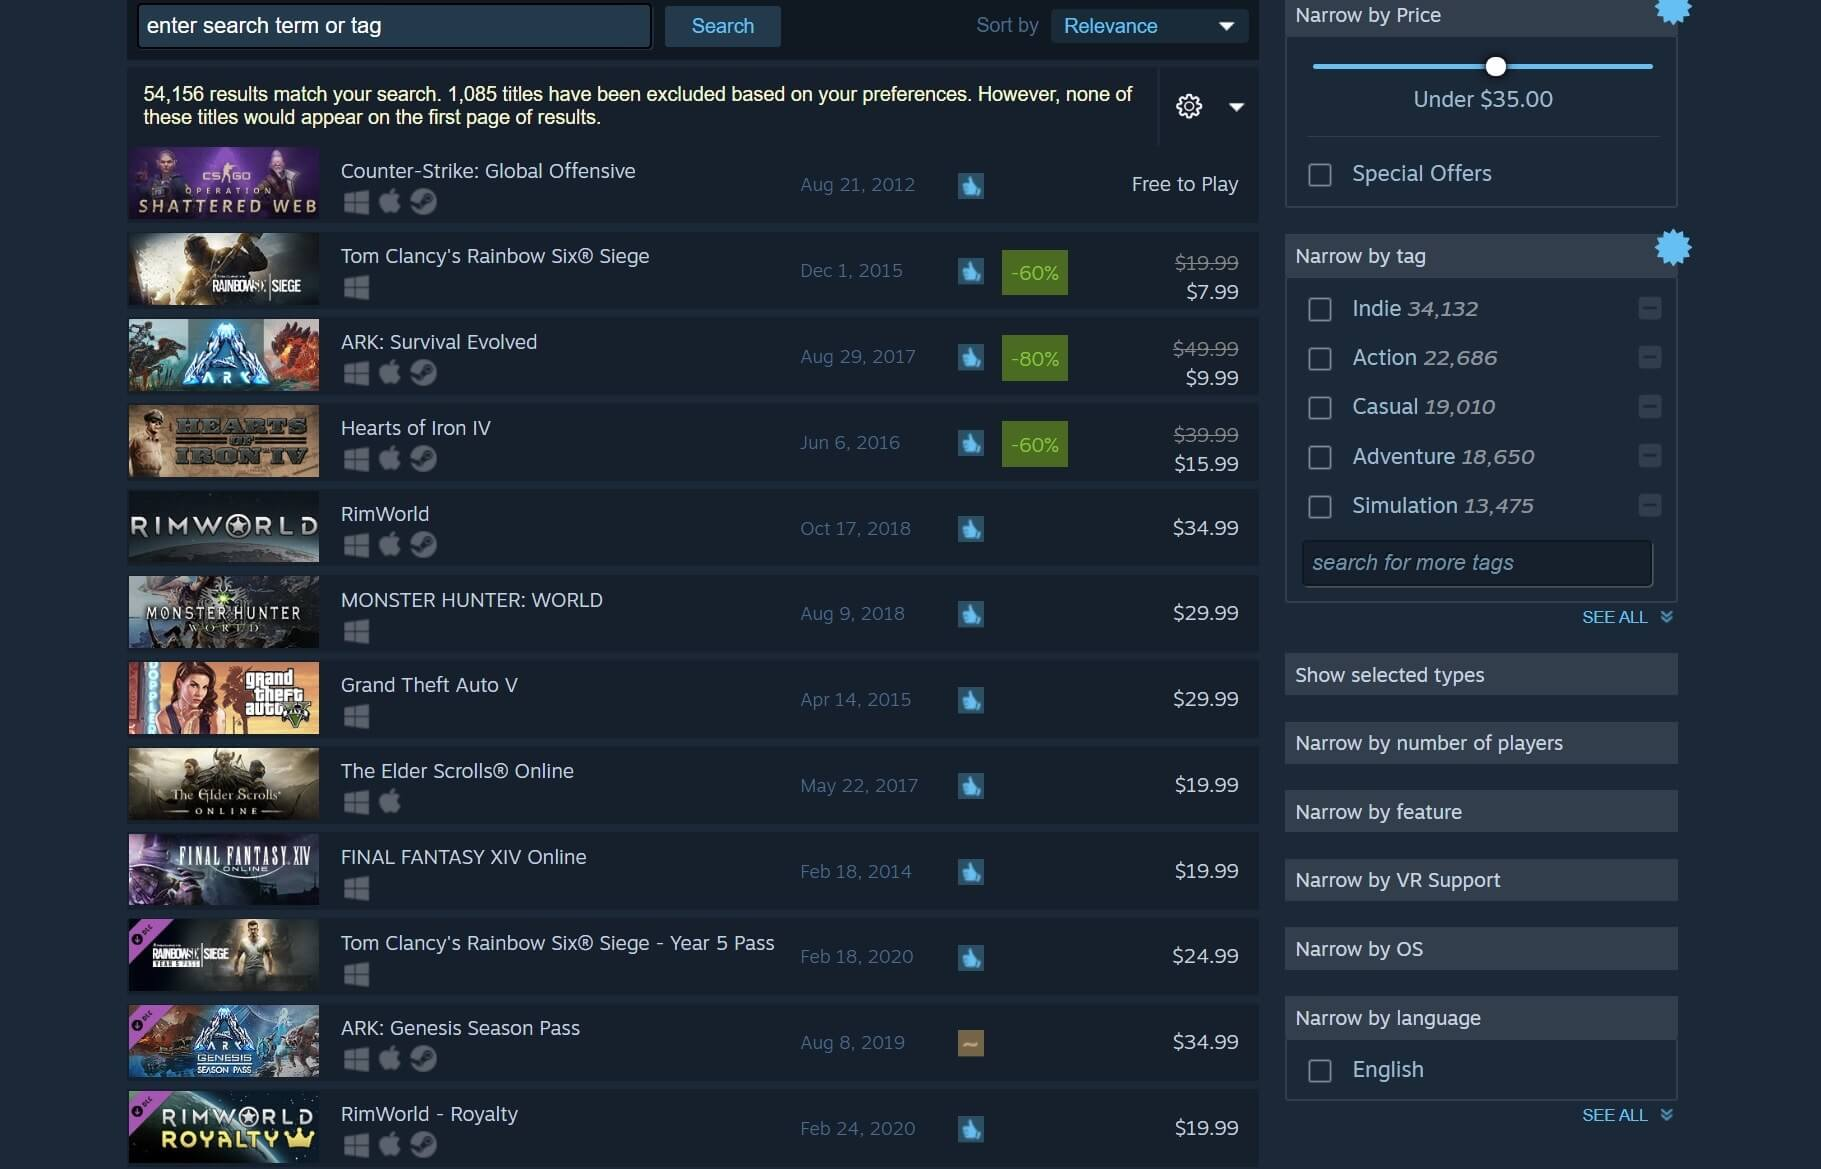 Steam improves its Search function with new filters - TechSpot